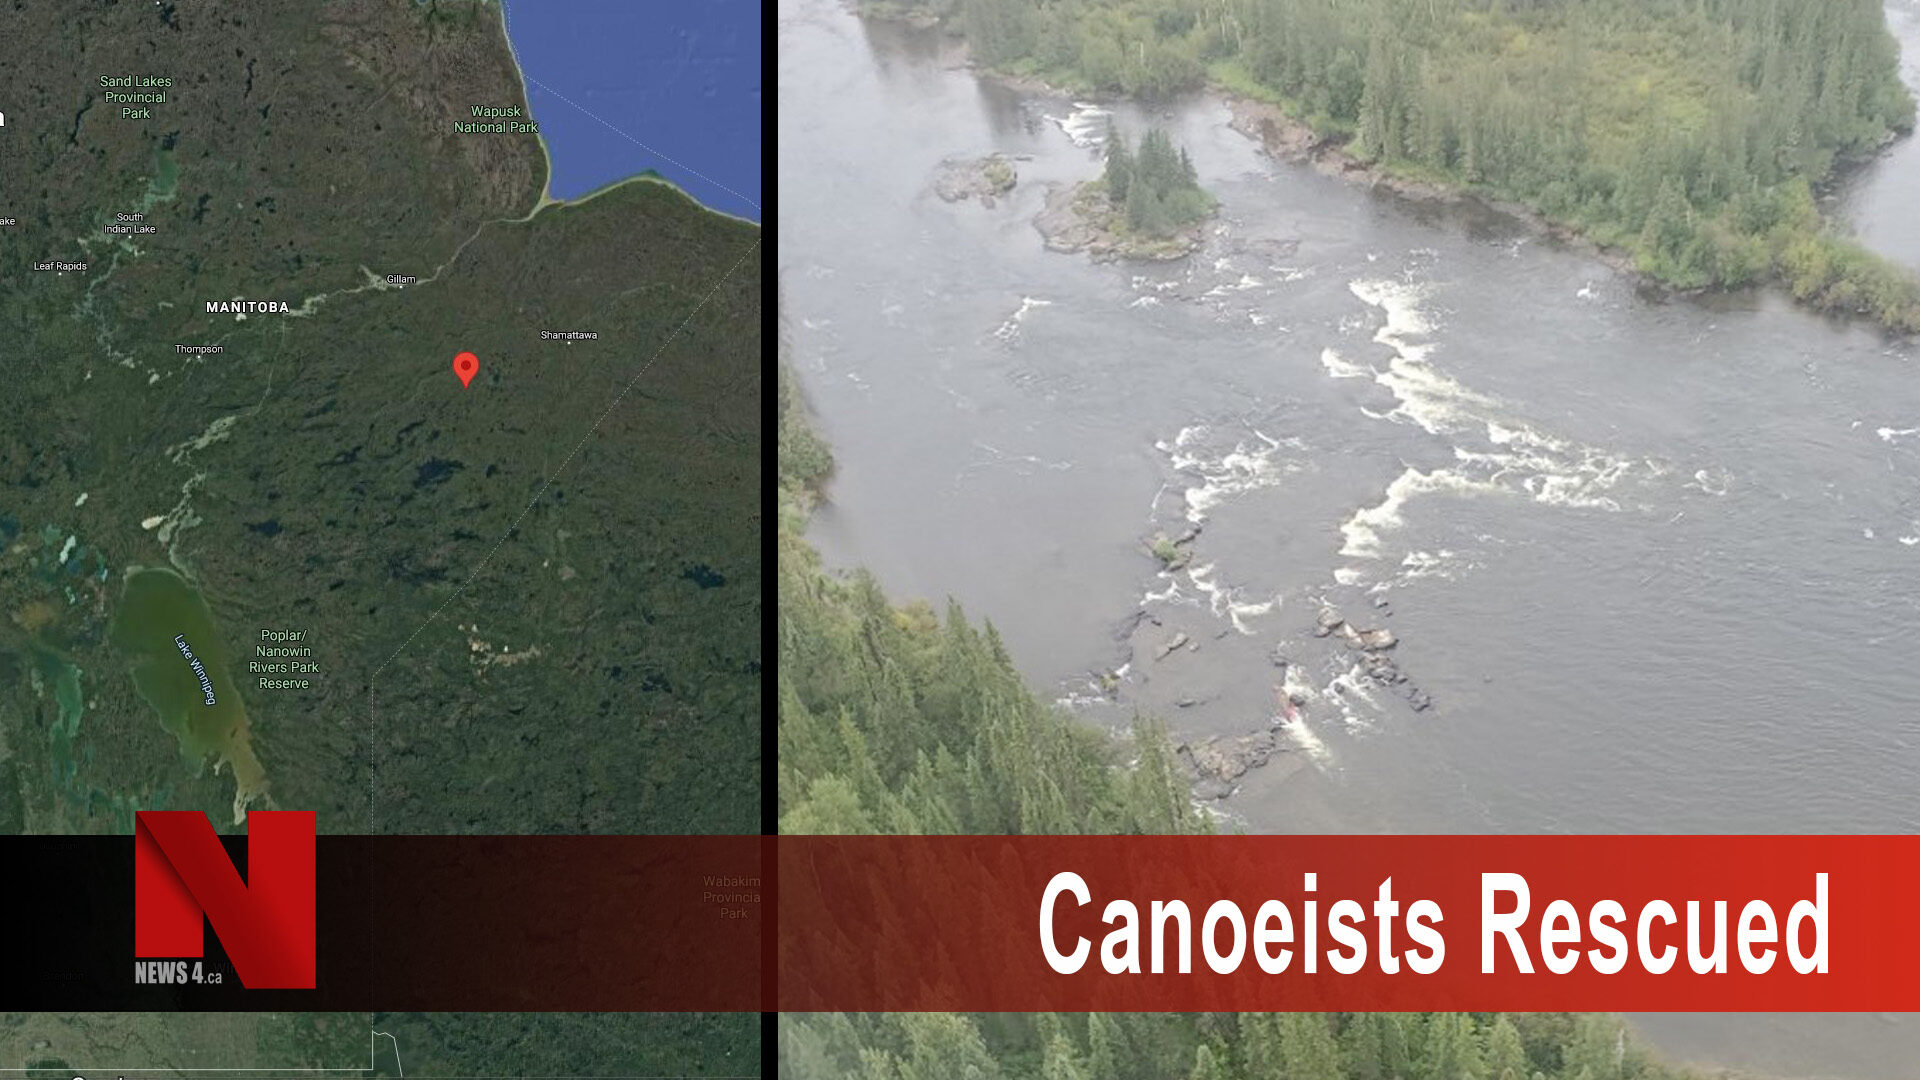 Canoeists rescued